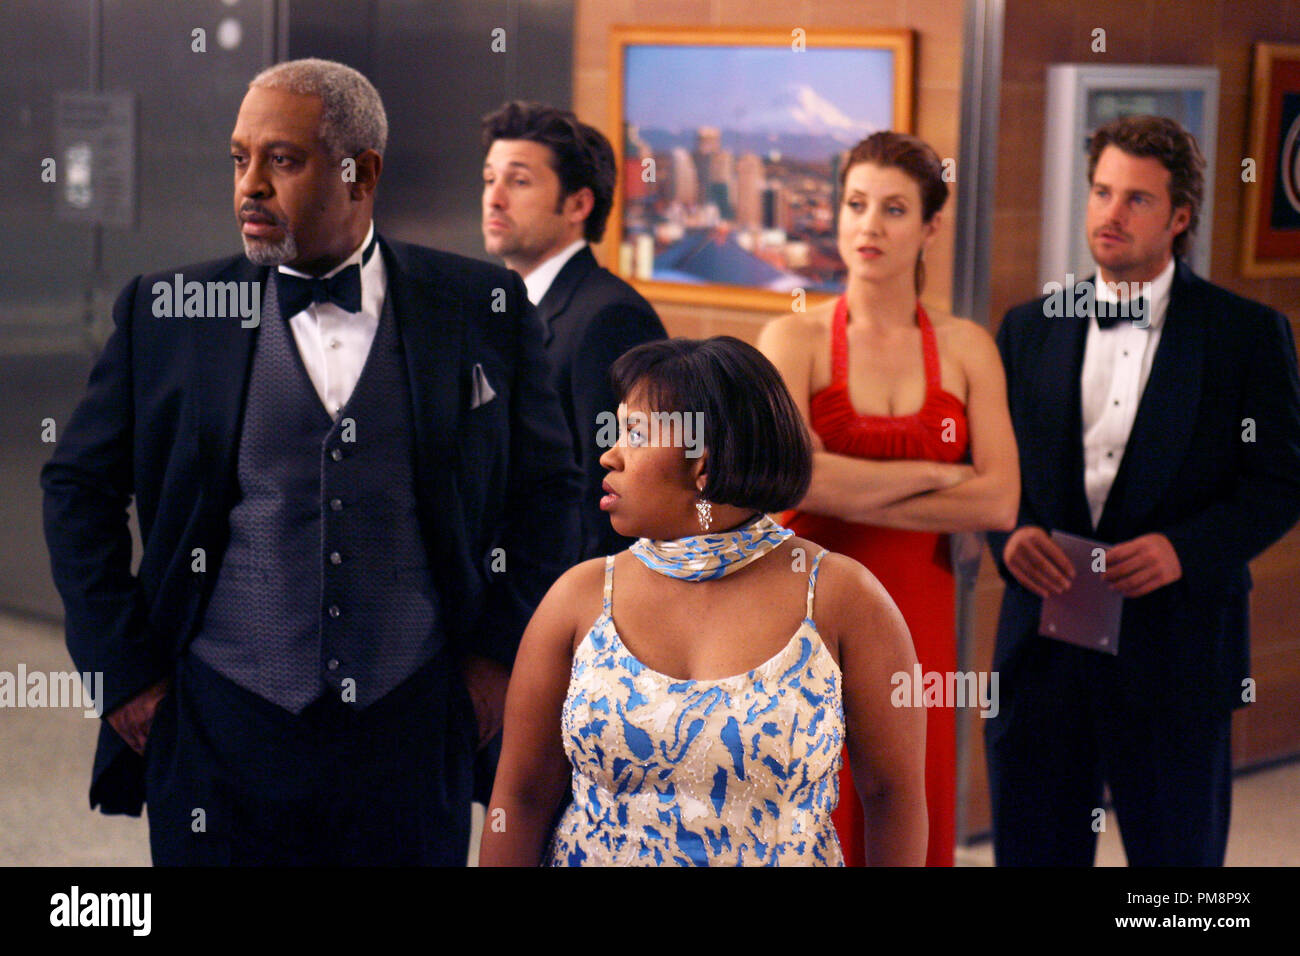 Studio Publicity Still from 'Grey's Anatomy' (Season 2 Episode Name: Deterioration of the Fight or Flight Response) James Pickens Jr., Patrick Dempsey, Chandra Wilson, Kate Walsh, Chris O'Donnell 2006 Photo credit: Scott Garfield - Stock Image